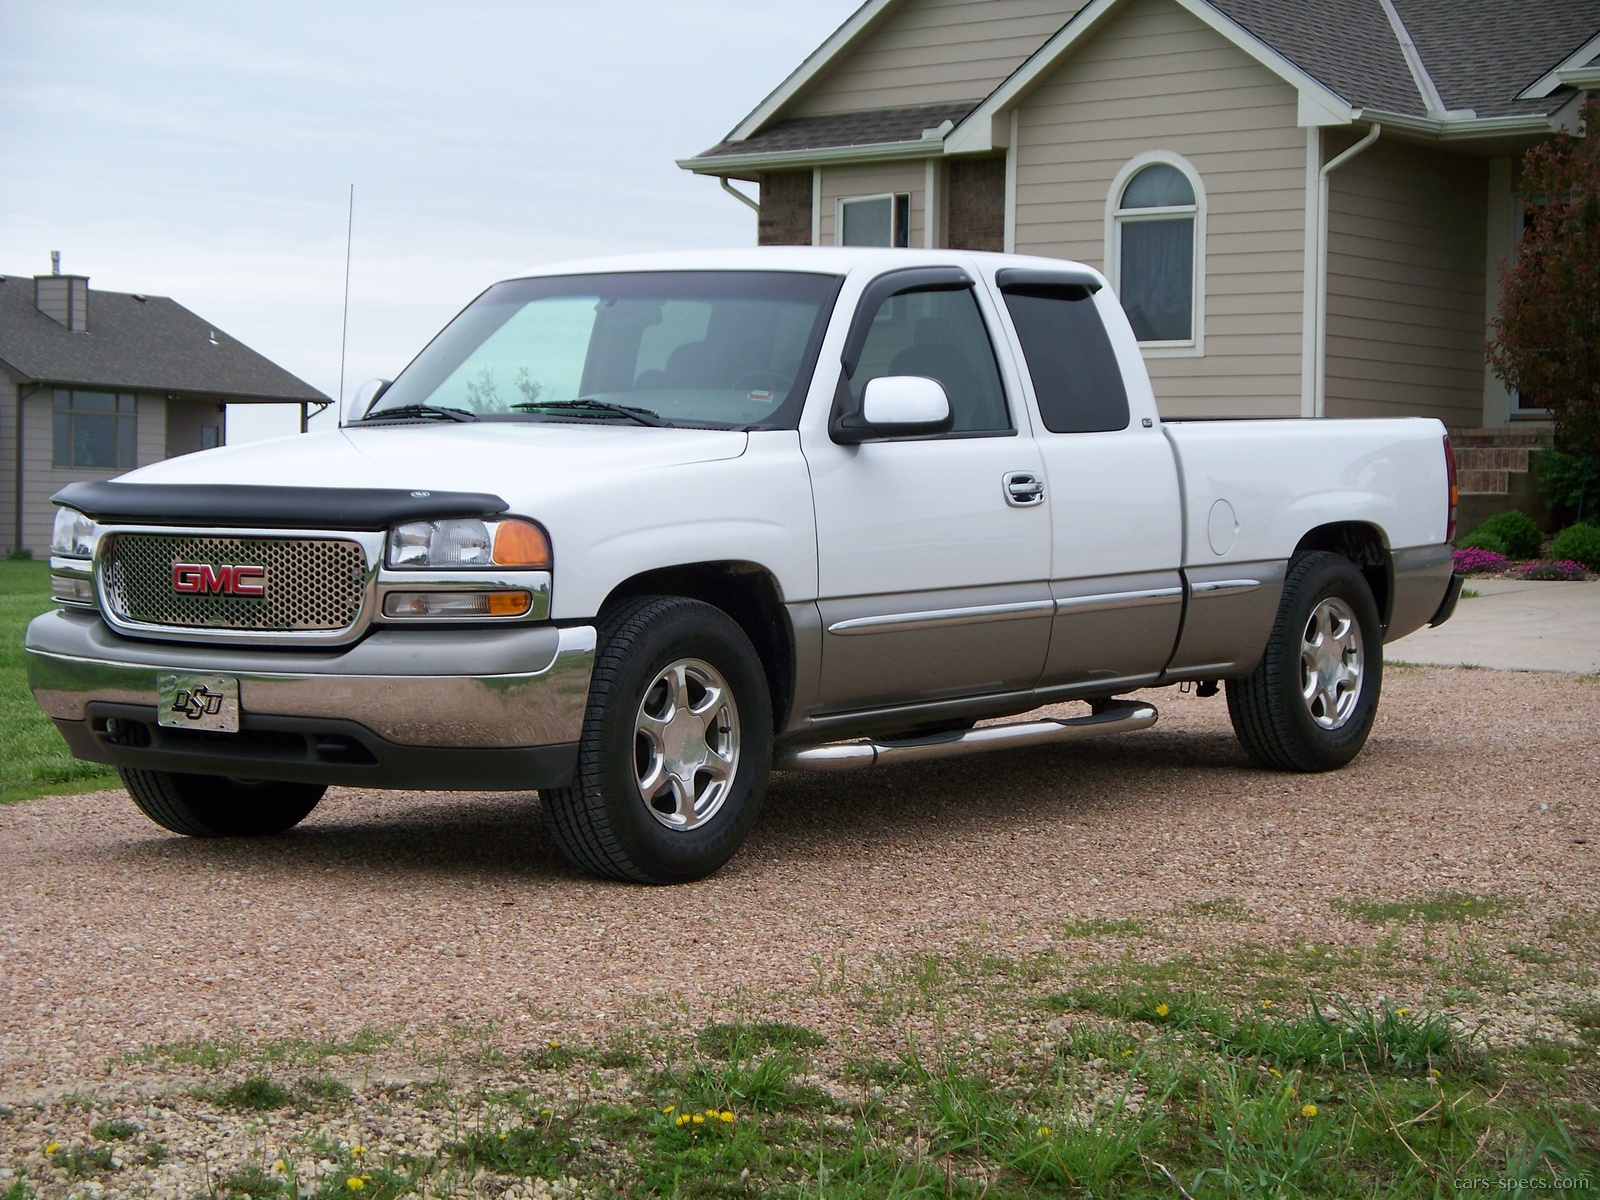 2000 gmc sierra classic 2500 extended cab specifications pictures prices. Black Bedroom Furniture Sets. Home Design Ideas